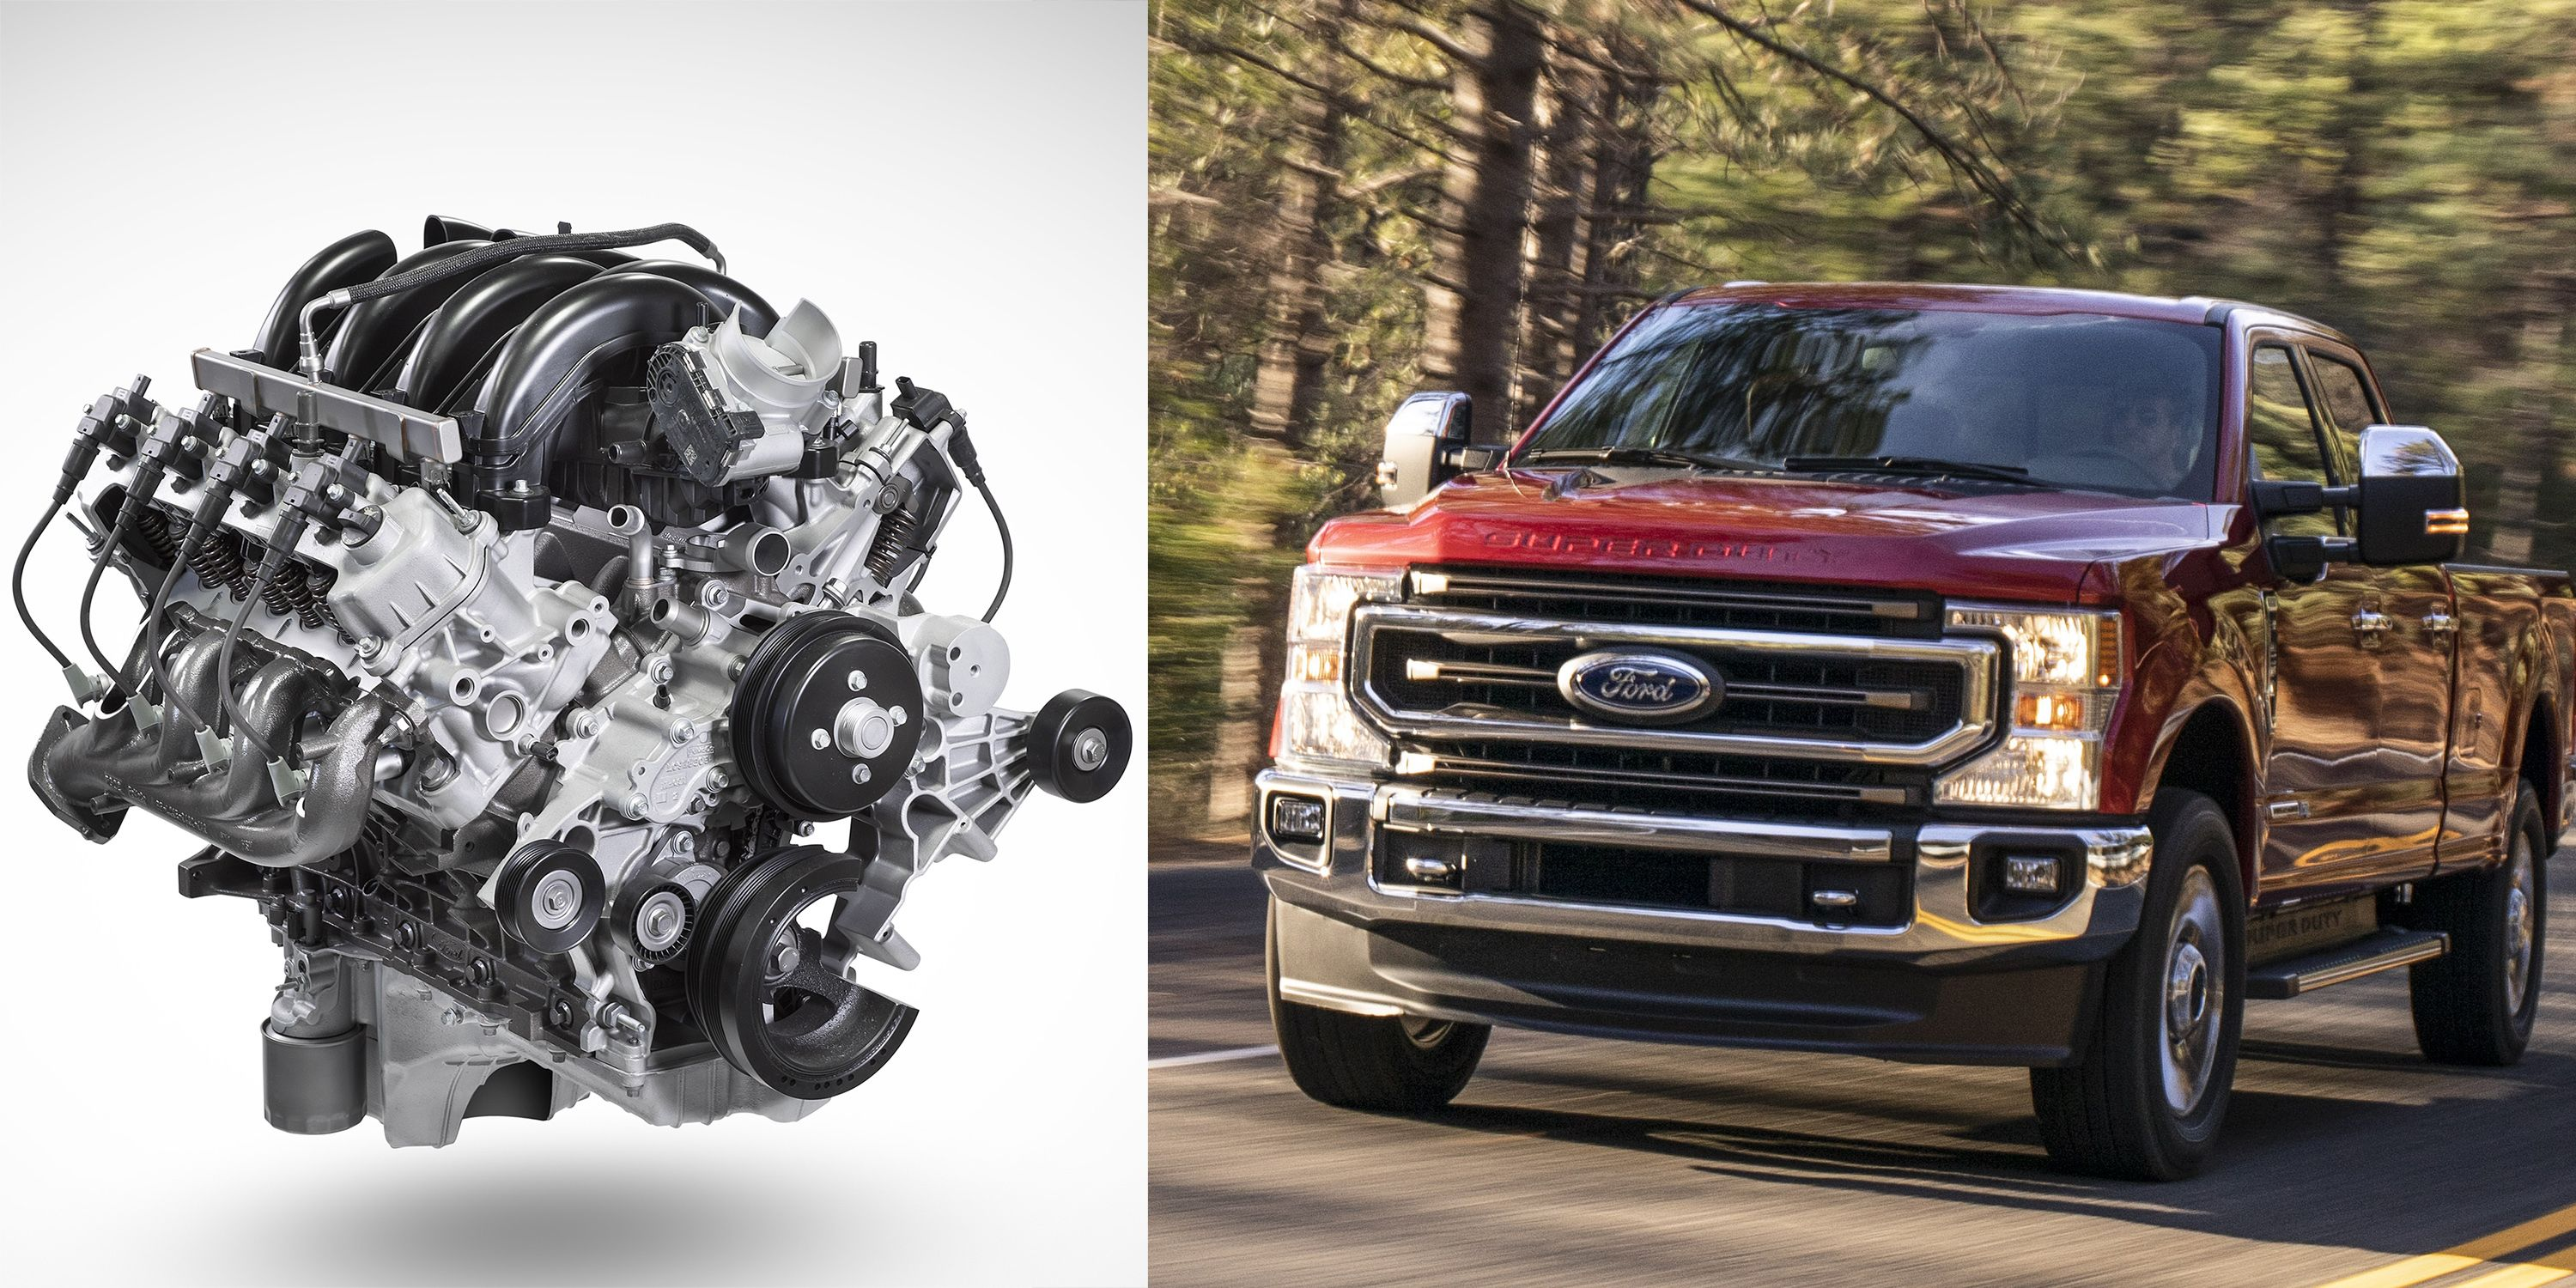 Why Ford Made a New 7 3-Liter Gas Pushrod V8 in 2019